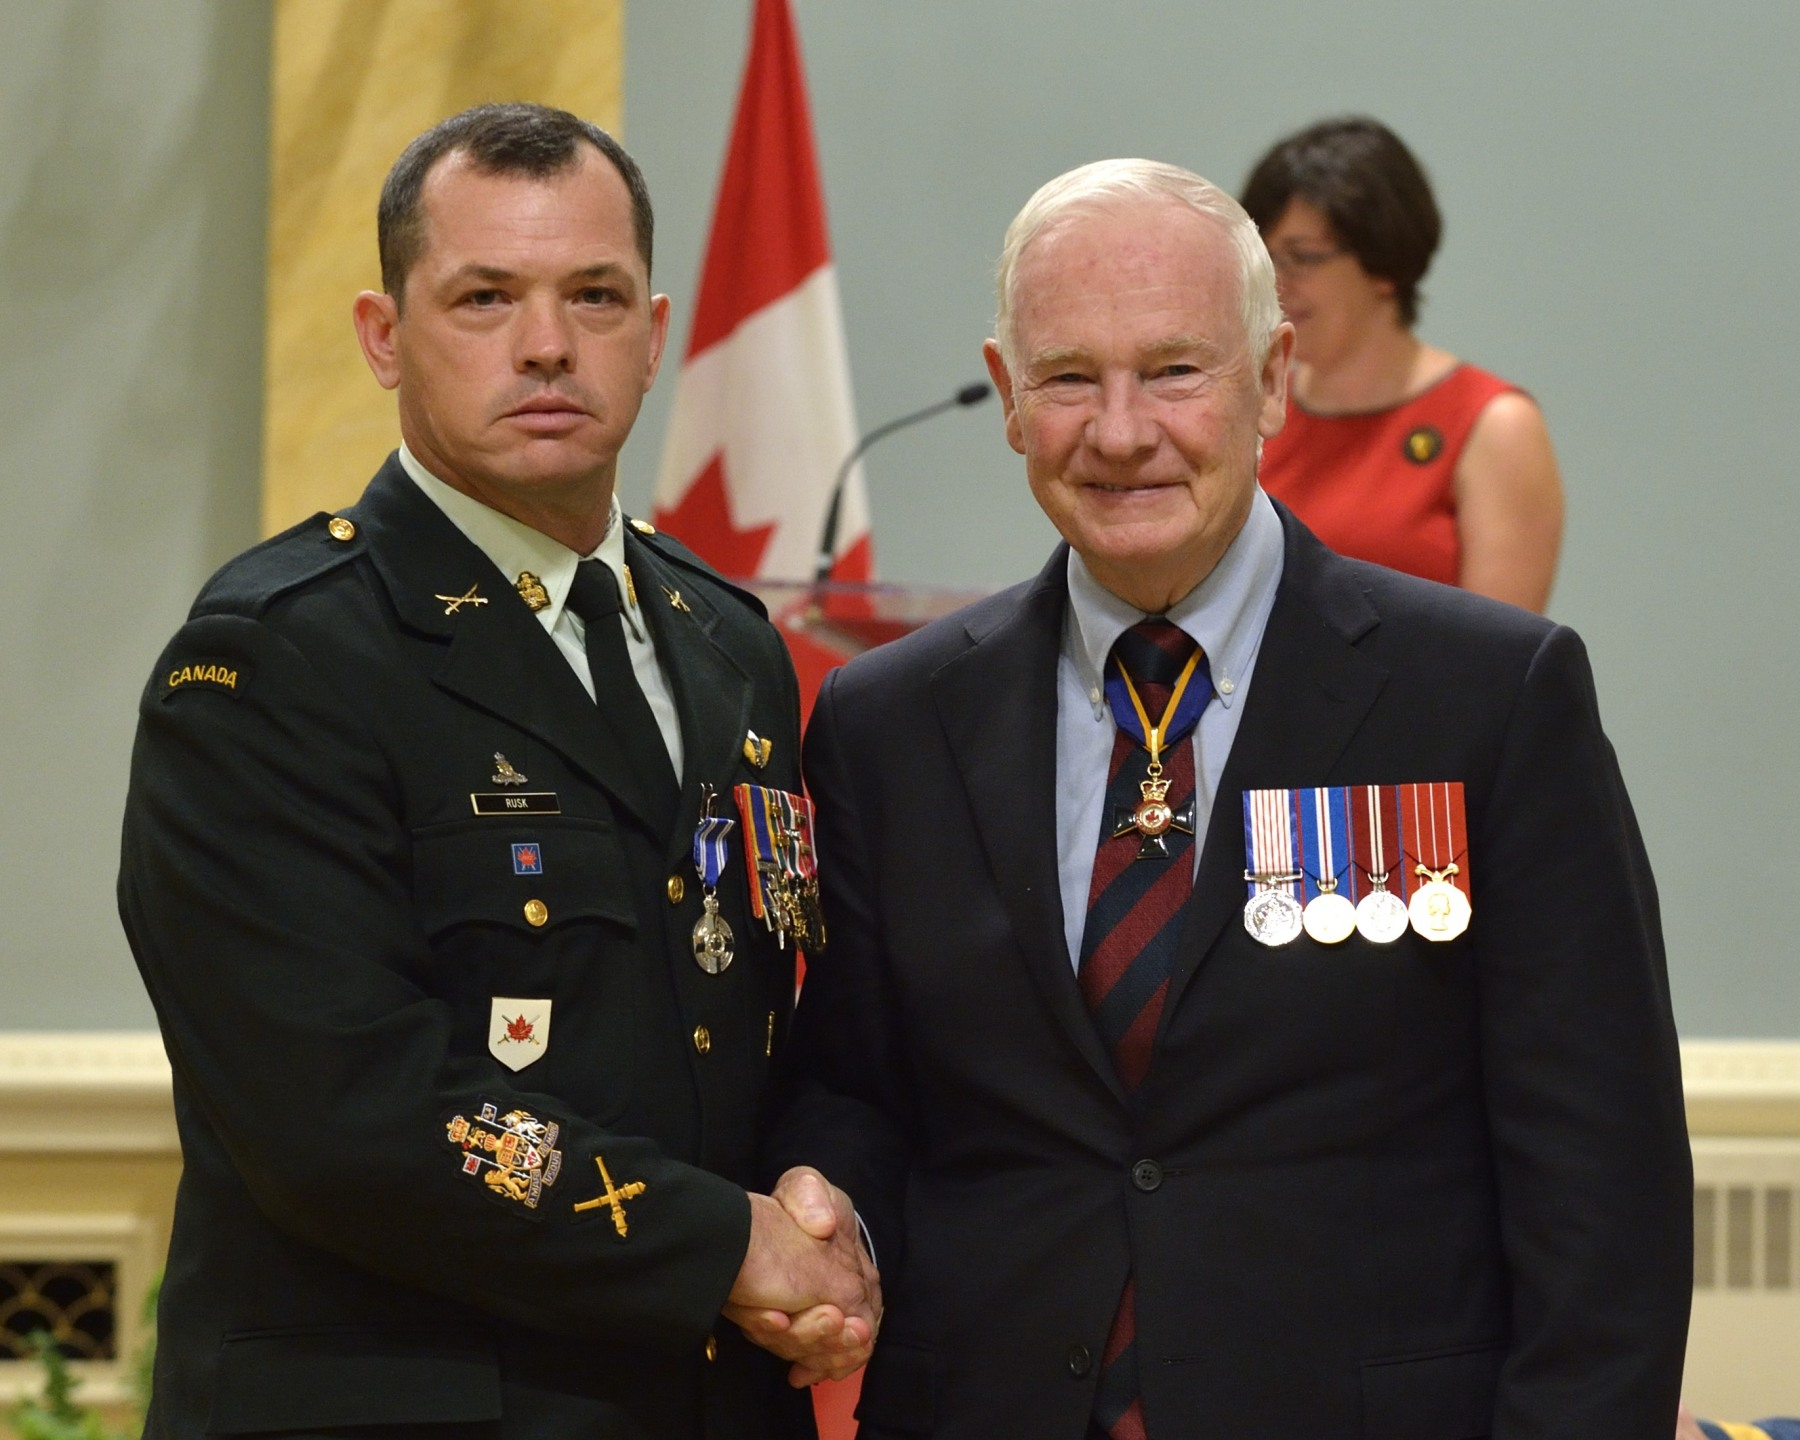 Chief Warrant Officer Christopher Paul Rusk, M.M.M., M.S.M., C.D. (Brampton, Ontario) received the received the Meritorious Service Medal (Military Division). From January 2010 to February 2011, Chief Warrant Officer Rusk excelled as regimental sergeant-major of three organizations. Initially deployed with the Provincial Reconstruction Team, he quickly transitioned to a mentoring role and prepared an infantry kandak for combat, before moving to the NATO Training Mission to help lay the foundation for Afghan National Police development. Whether in the classroom, at headquarters, or on the battlefield, Chief Warrant Officer Rusk distinguished himself as an exceptional soldier and dynamic leader.